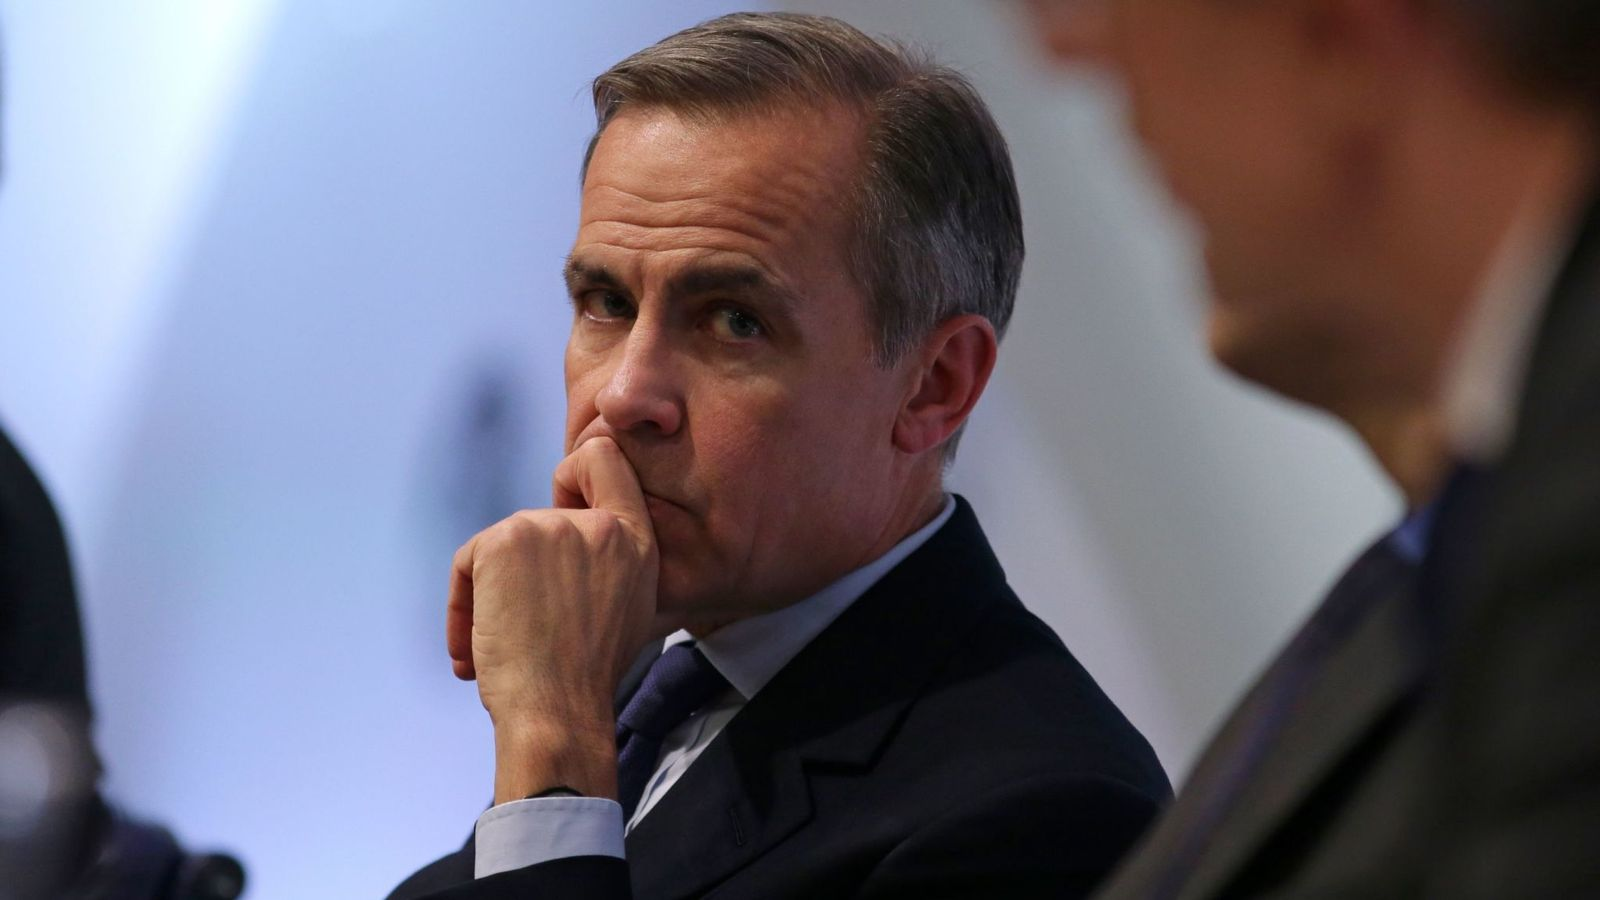 UN appoints Bank of England Gov. Special Envoy for Climate Action